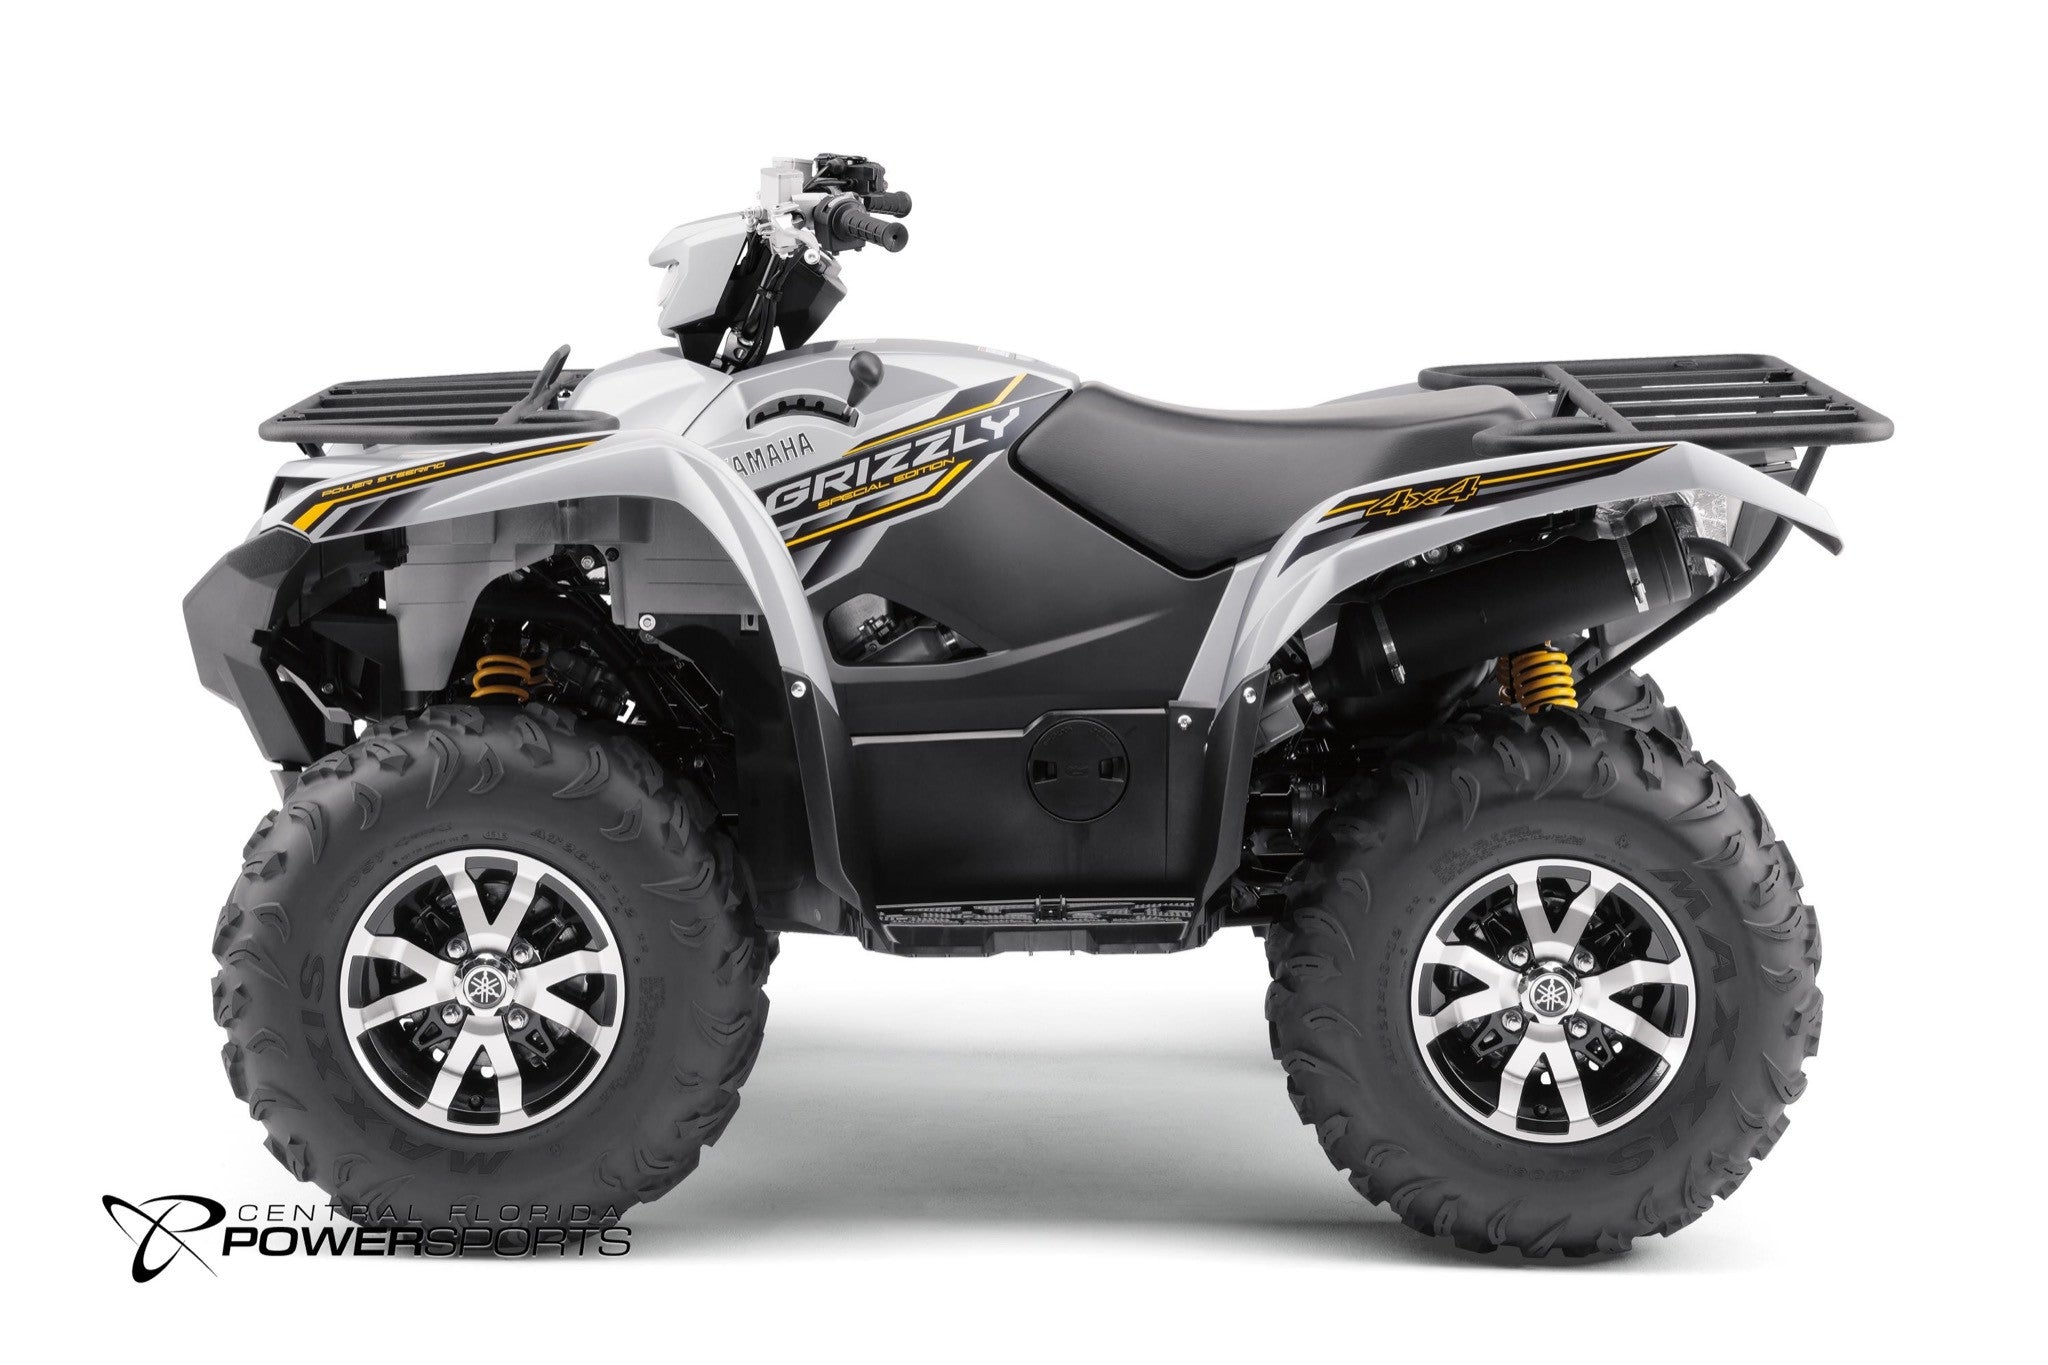 Yamaha Grizzly Eps Se Atv Central Florida Powersports on Yamaha Grizzly 700 Special Edition